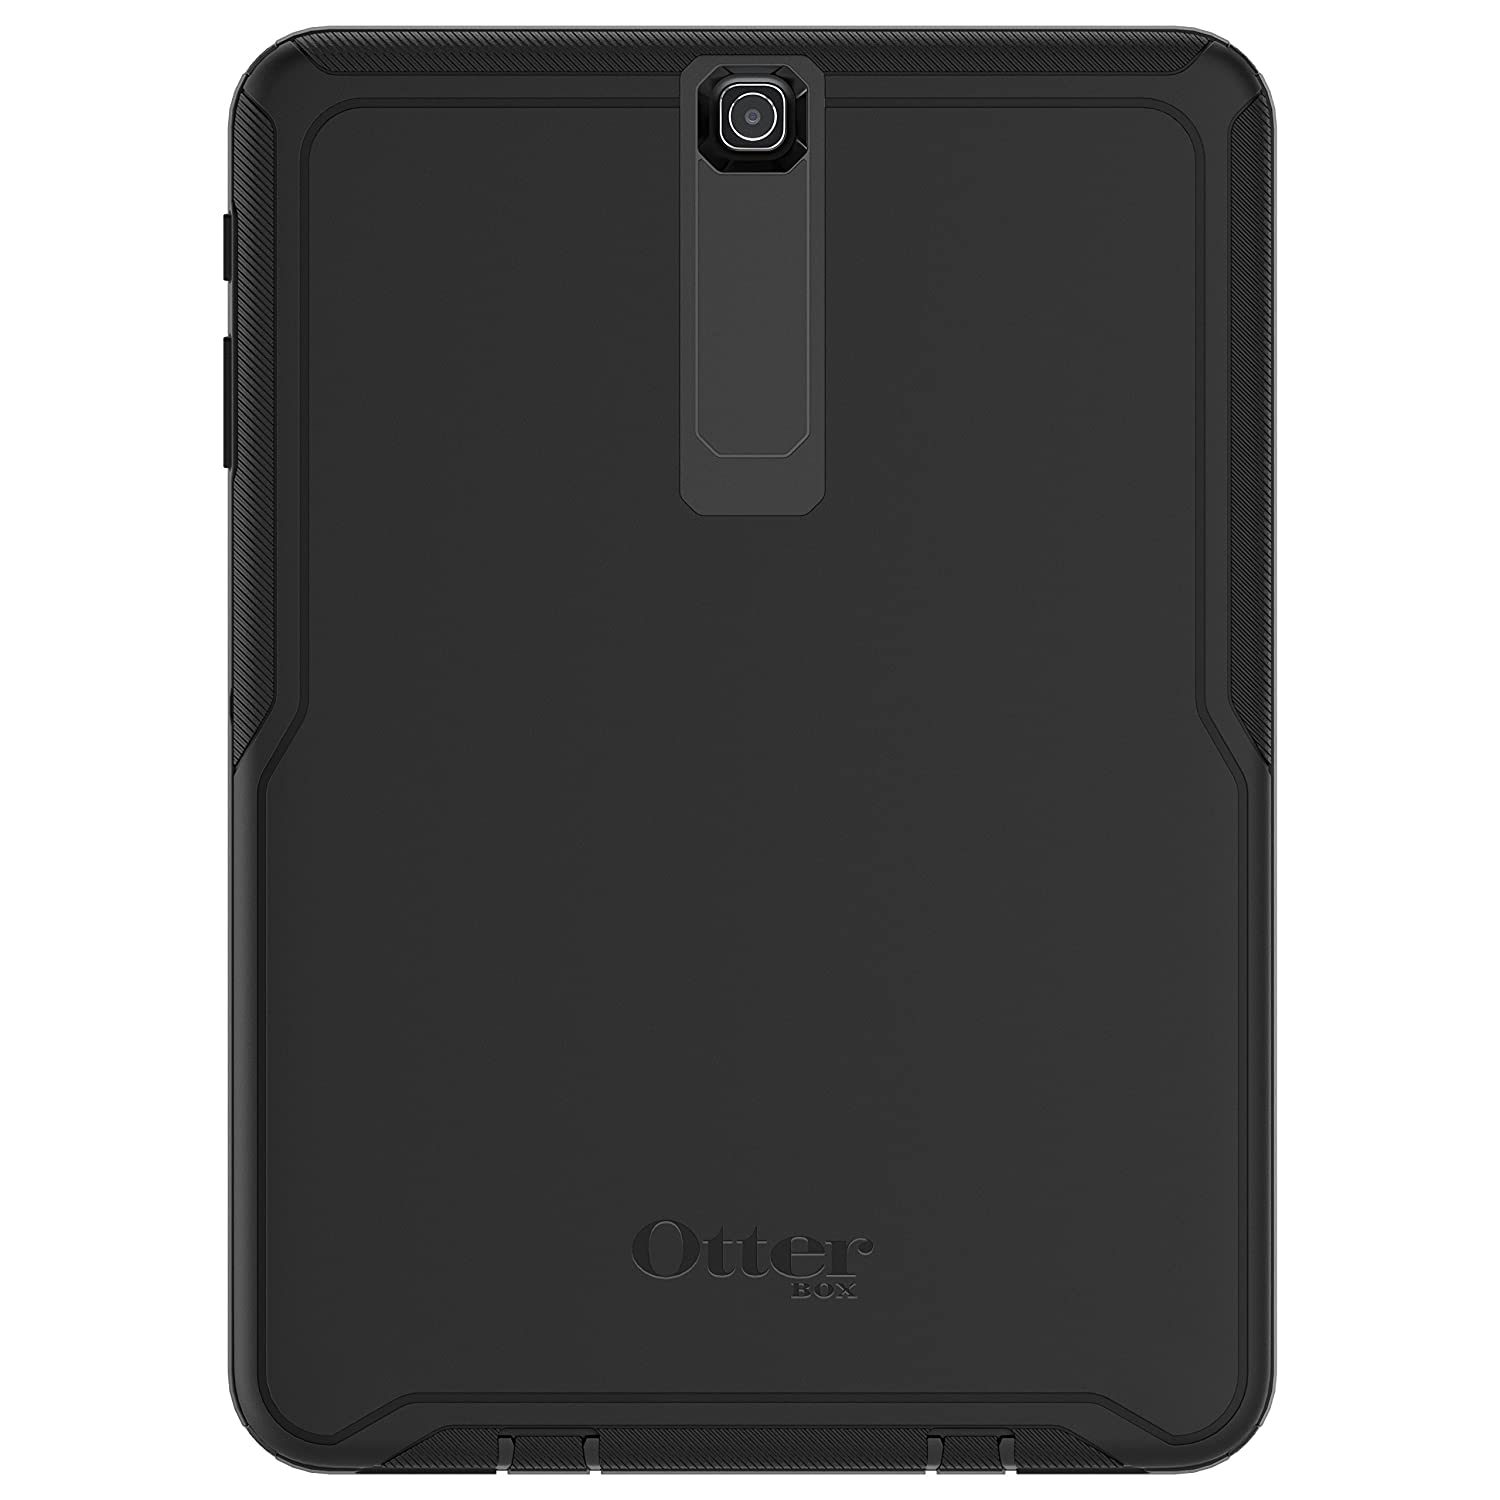 cheap for discount b61c3 a6d4f OtterBox Defender Series Case for Samsung Galaxy TAB S2 9.7